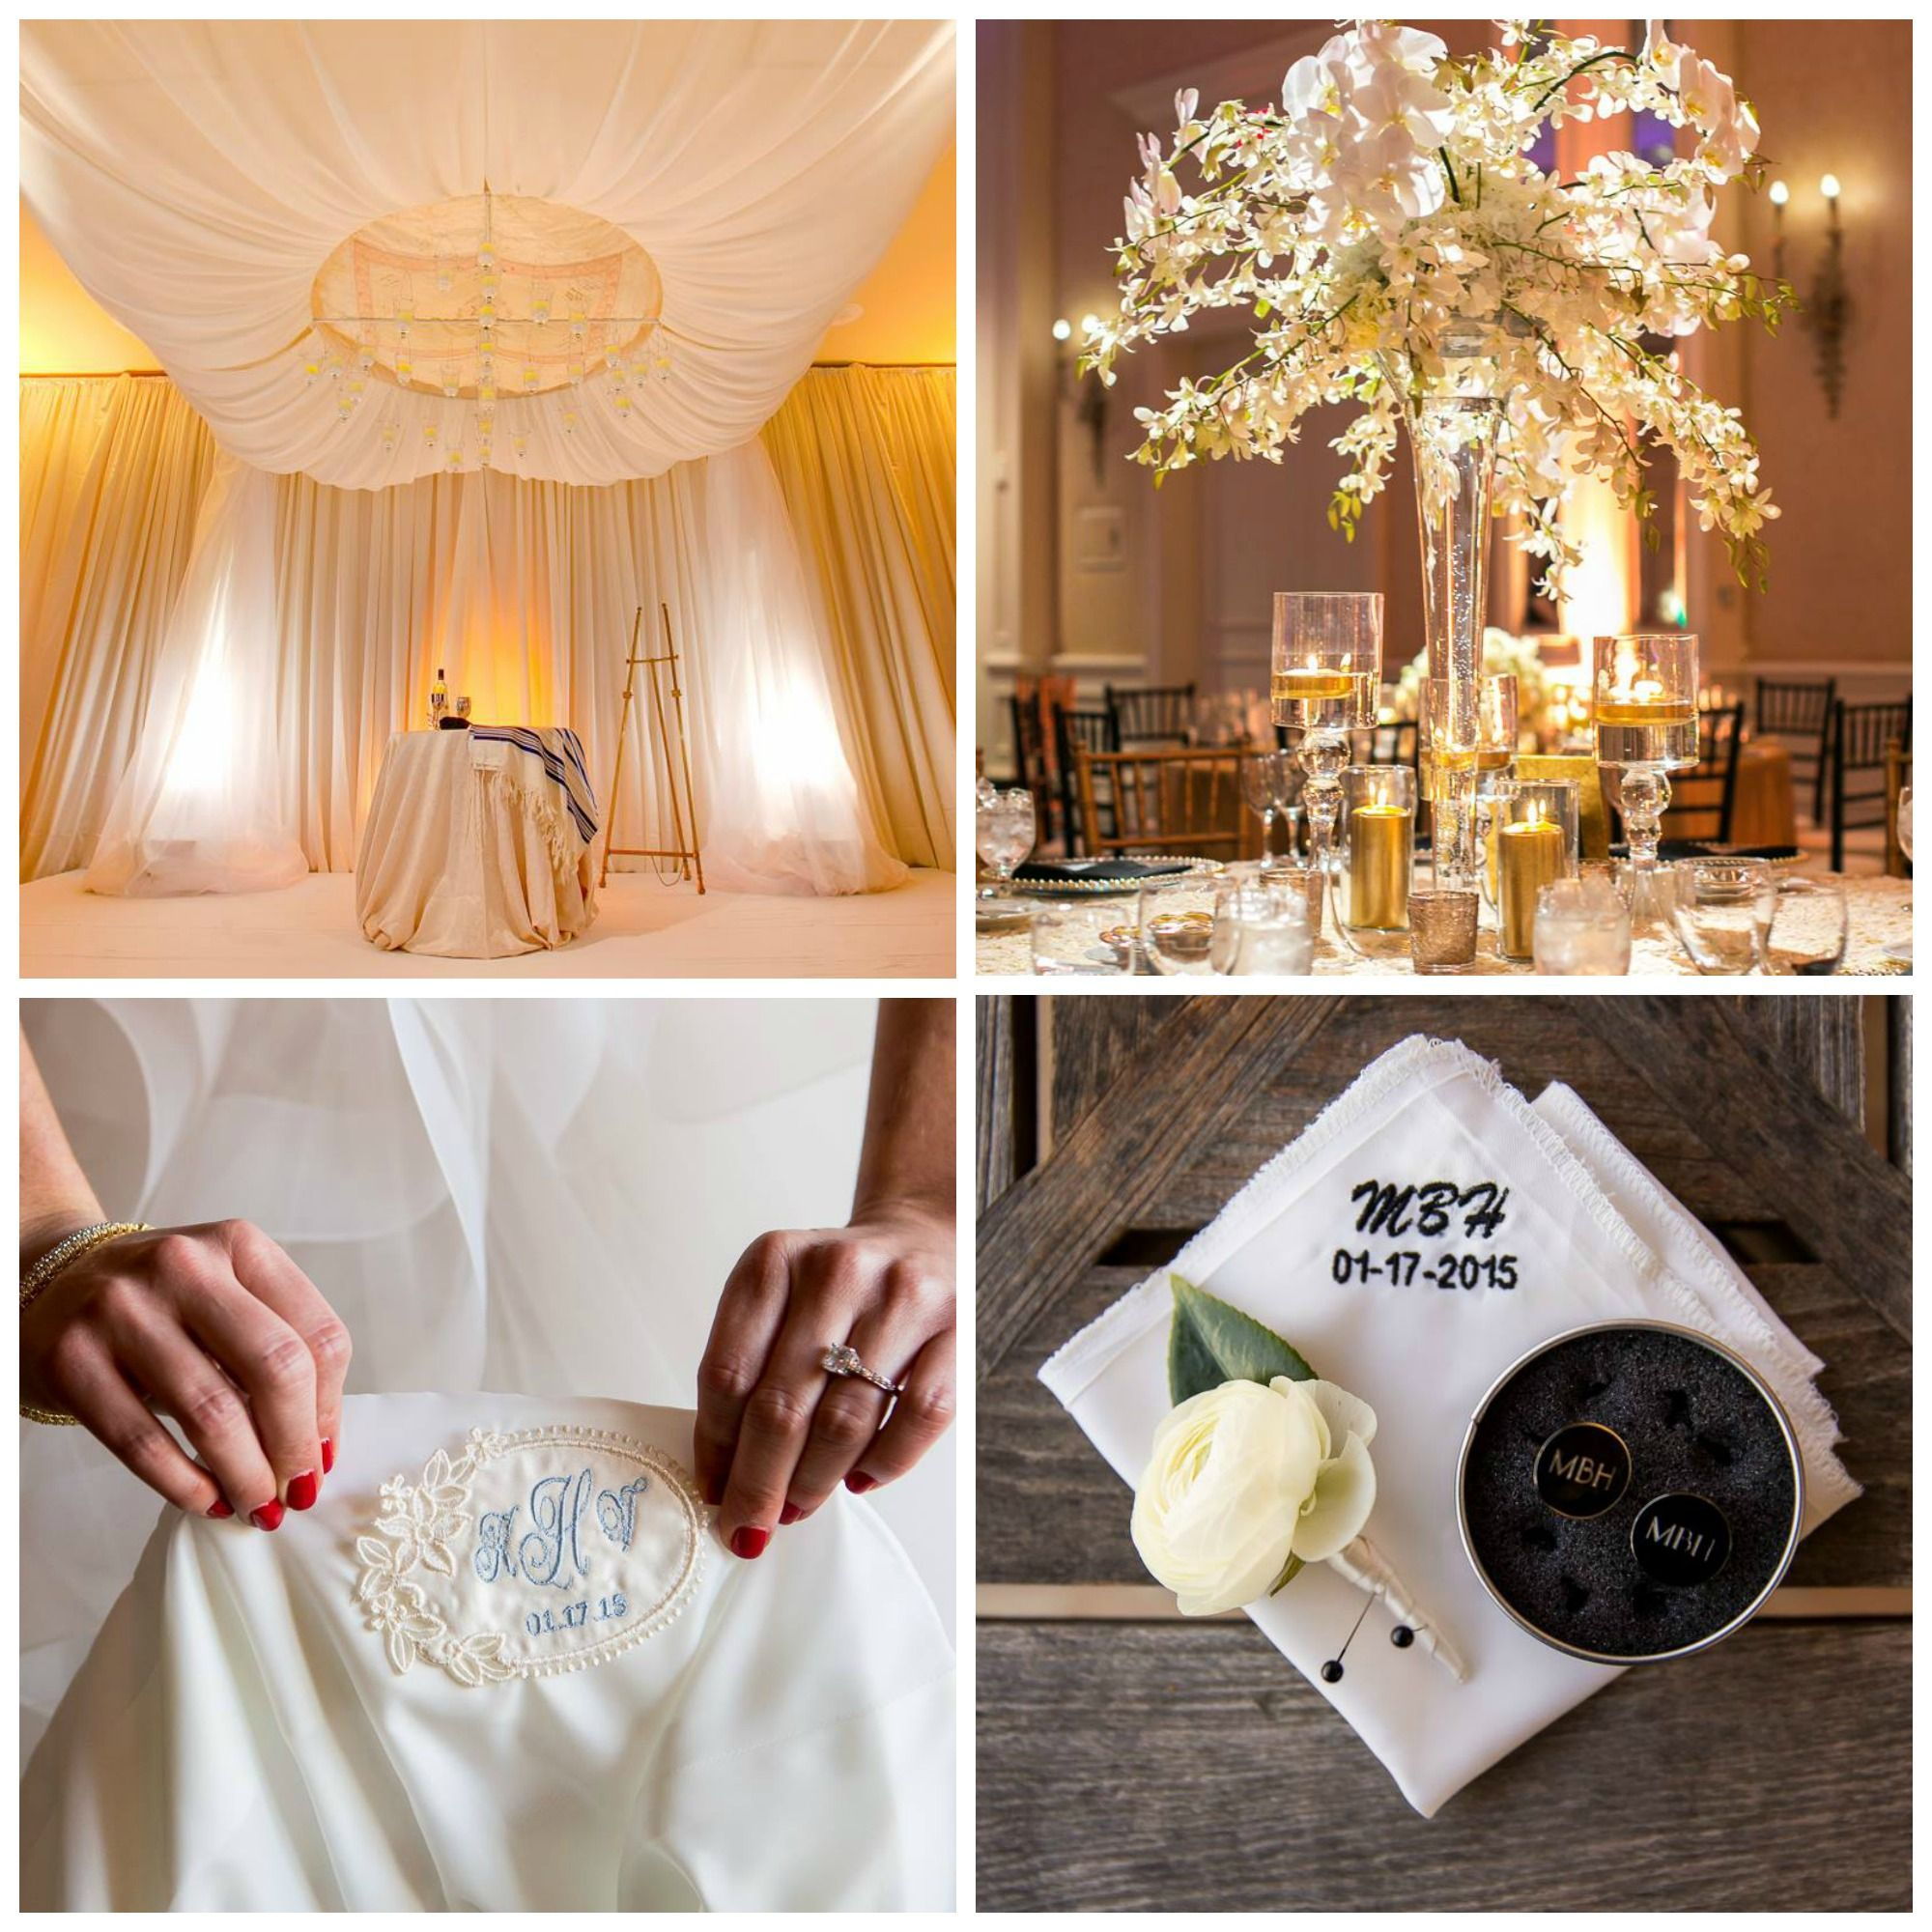 We adore every last detail of Michael + Katherine's big